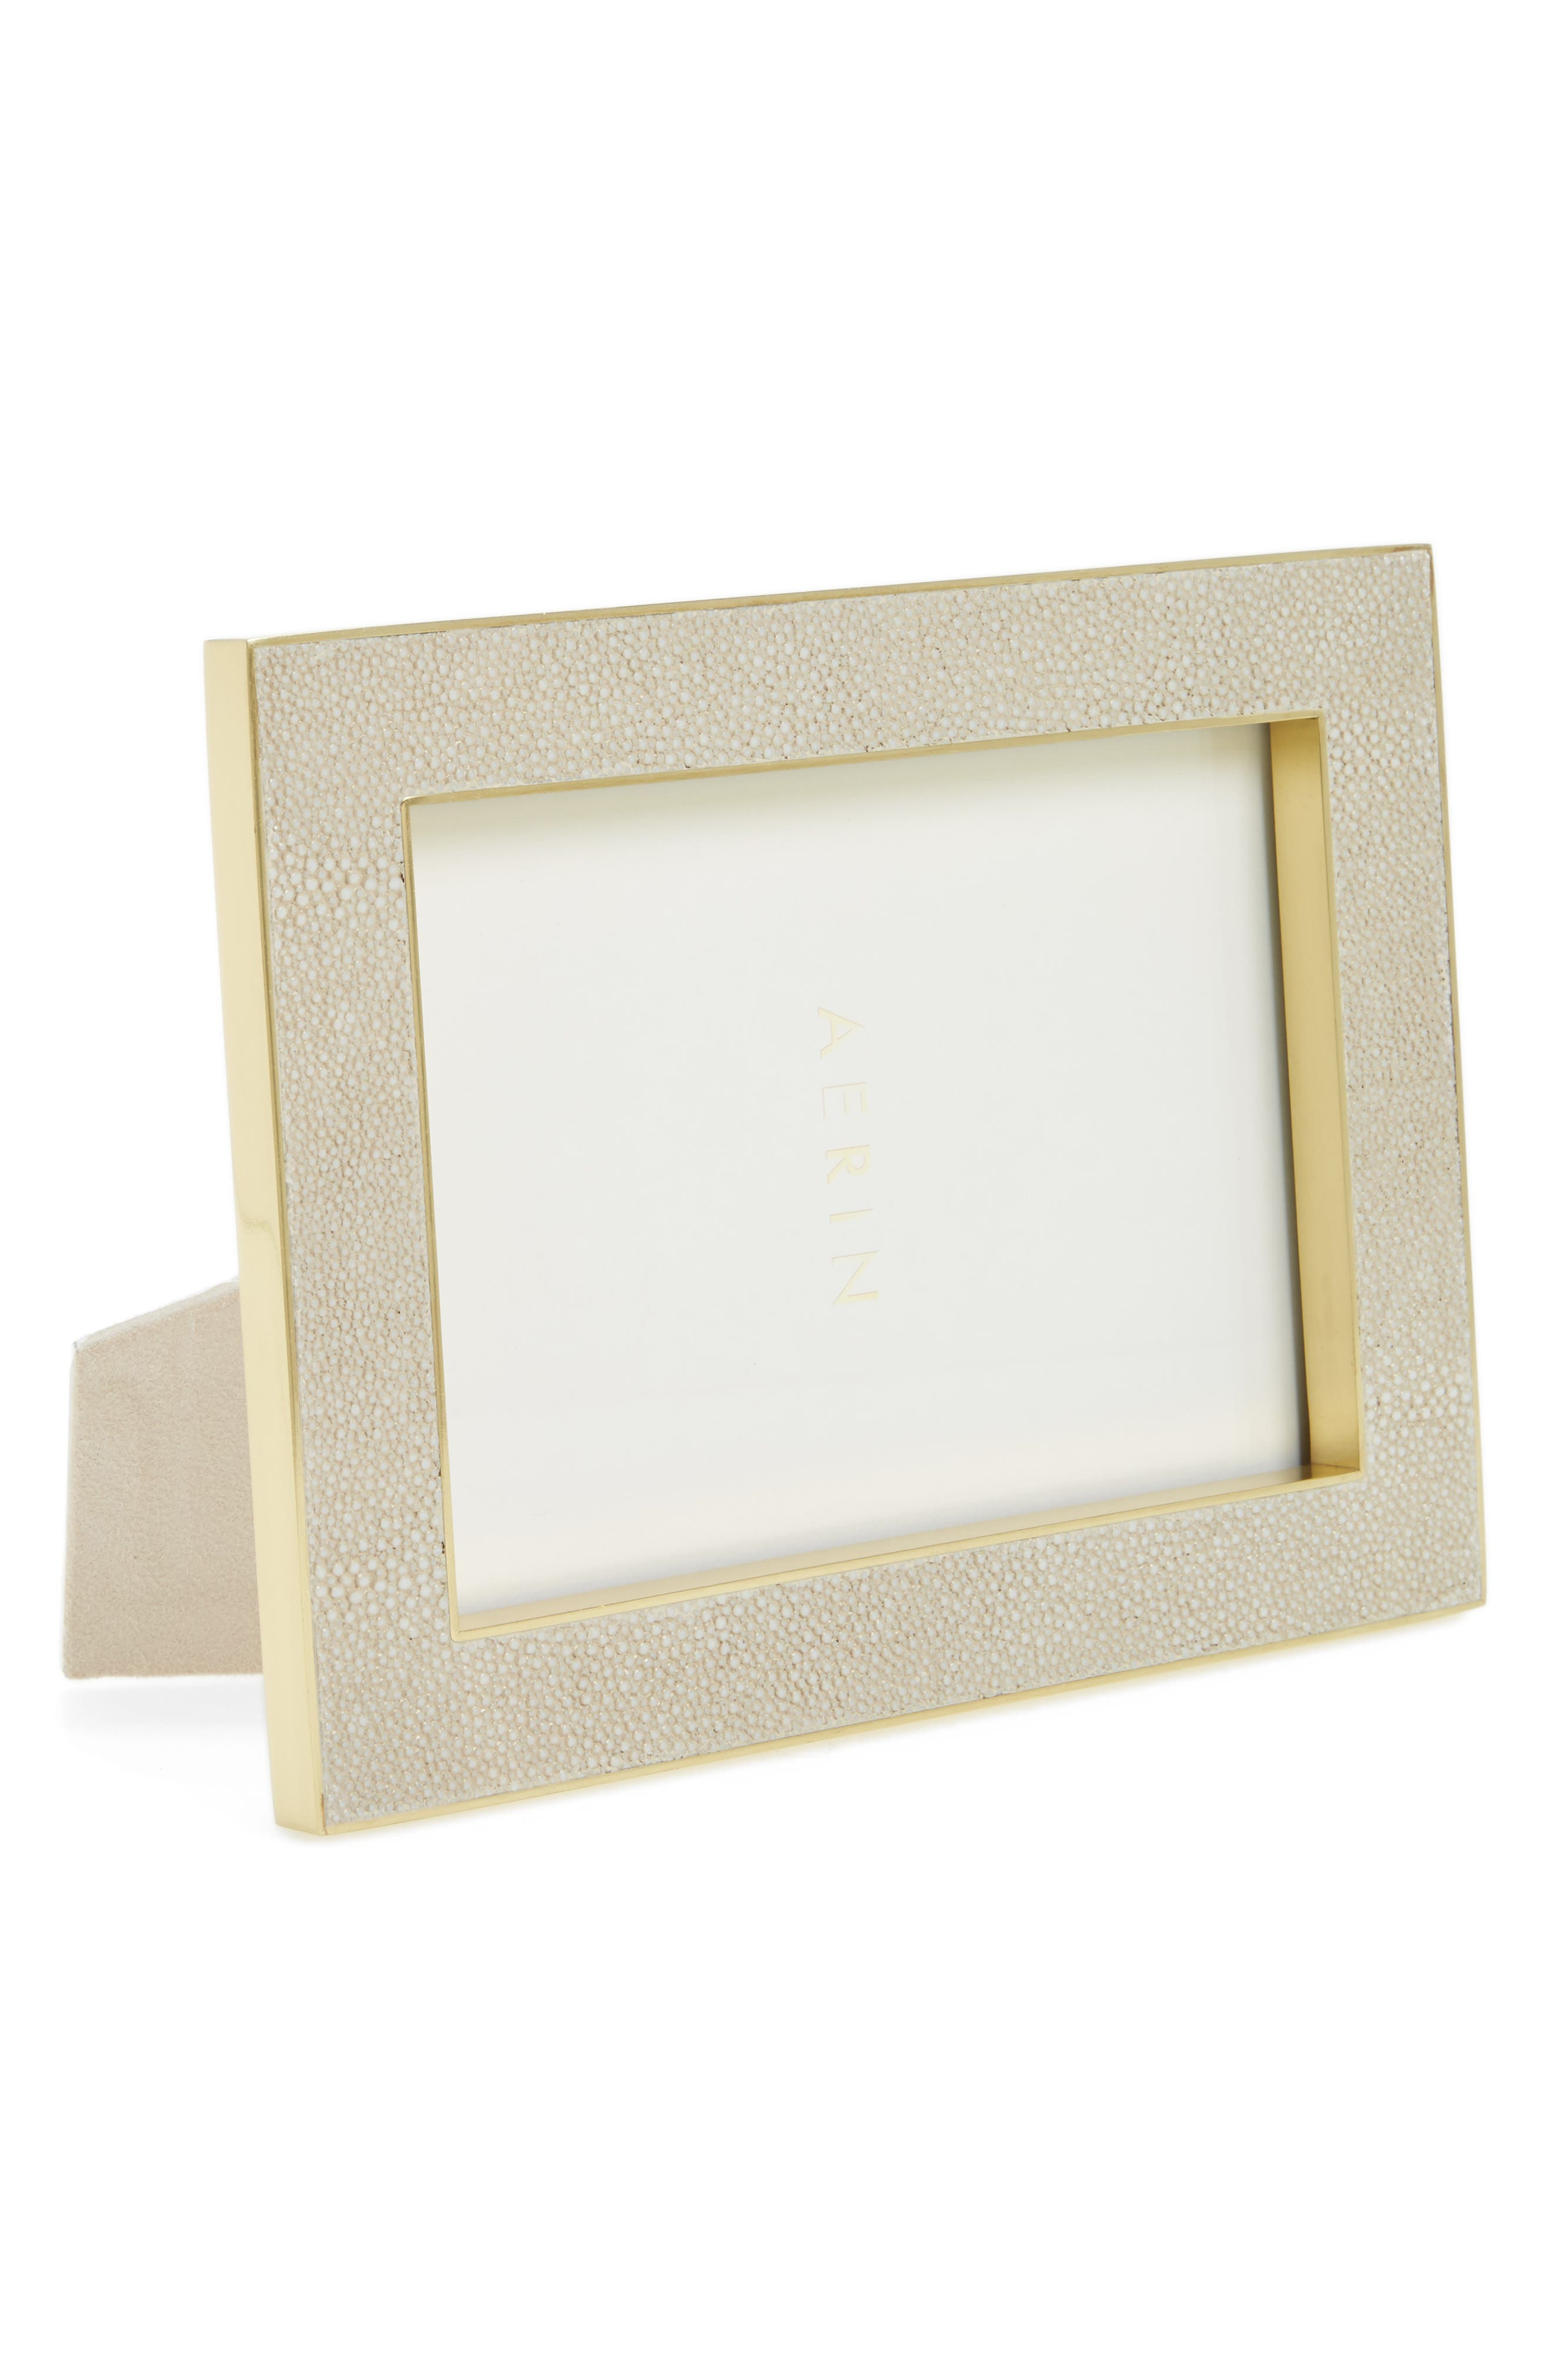 Shagreen Picture Frame,                         Main,                         color, Wheat